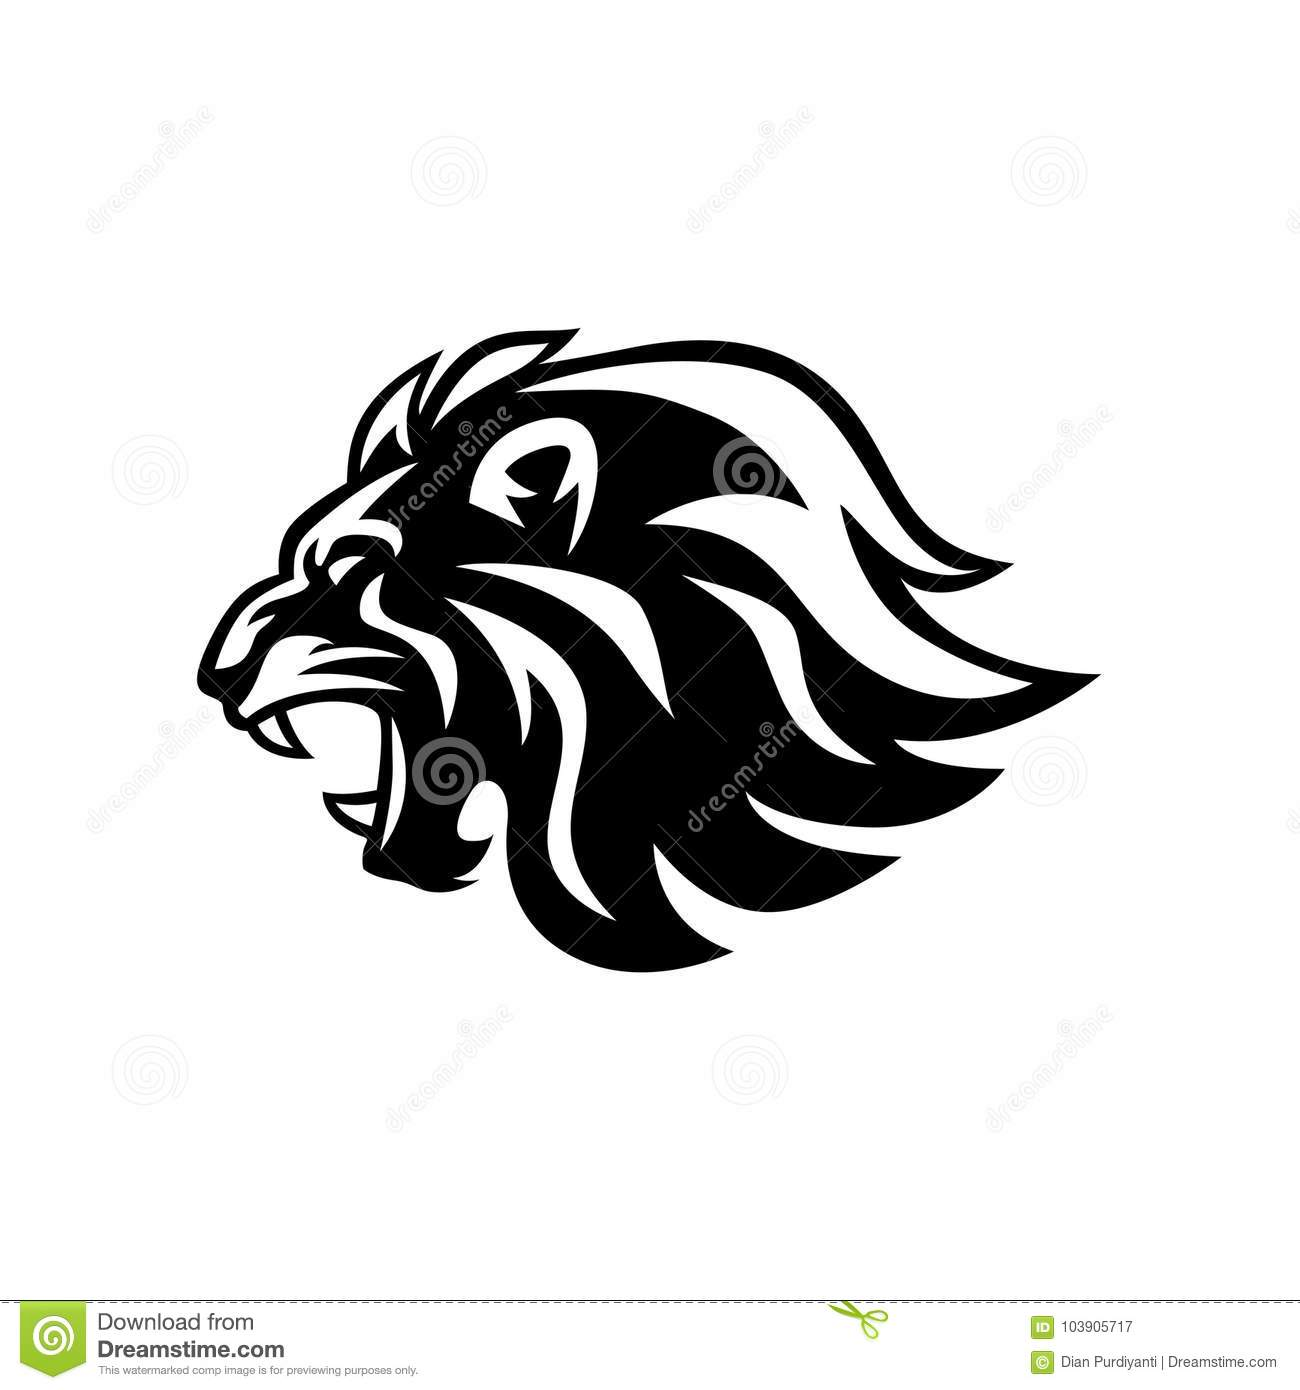 Roaring Lion Black White Stock Illustrations 695 Roaring Lion Black White Stock Illustrations Vectors Clipart Dreamstime Autumn roaring lion black silhouette, vector emblem of lion head as part of logo or tattoo design. https www dreamstime com angry roaring lion head black white vector logo design illustration template image103905717